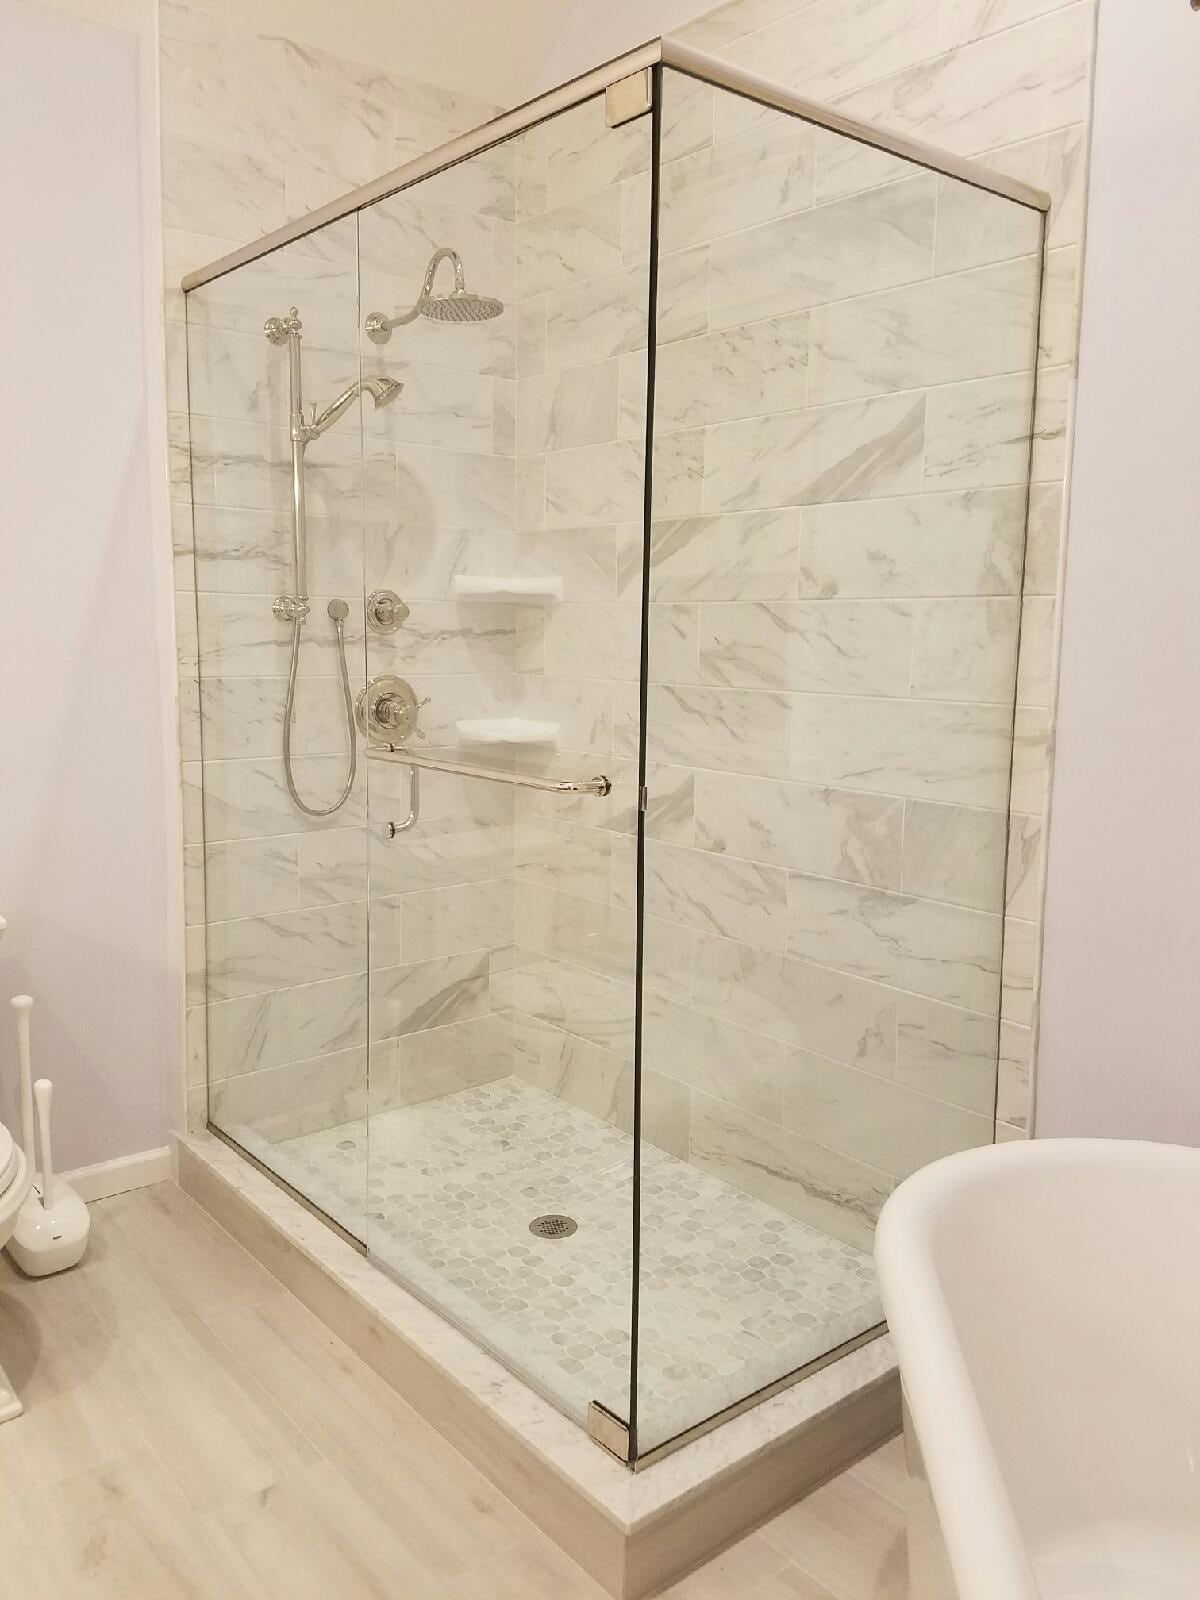 Shower Enclosure With 90 Degree Corner And Towel Bar Handle